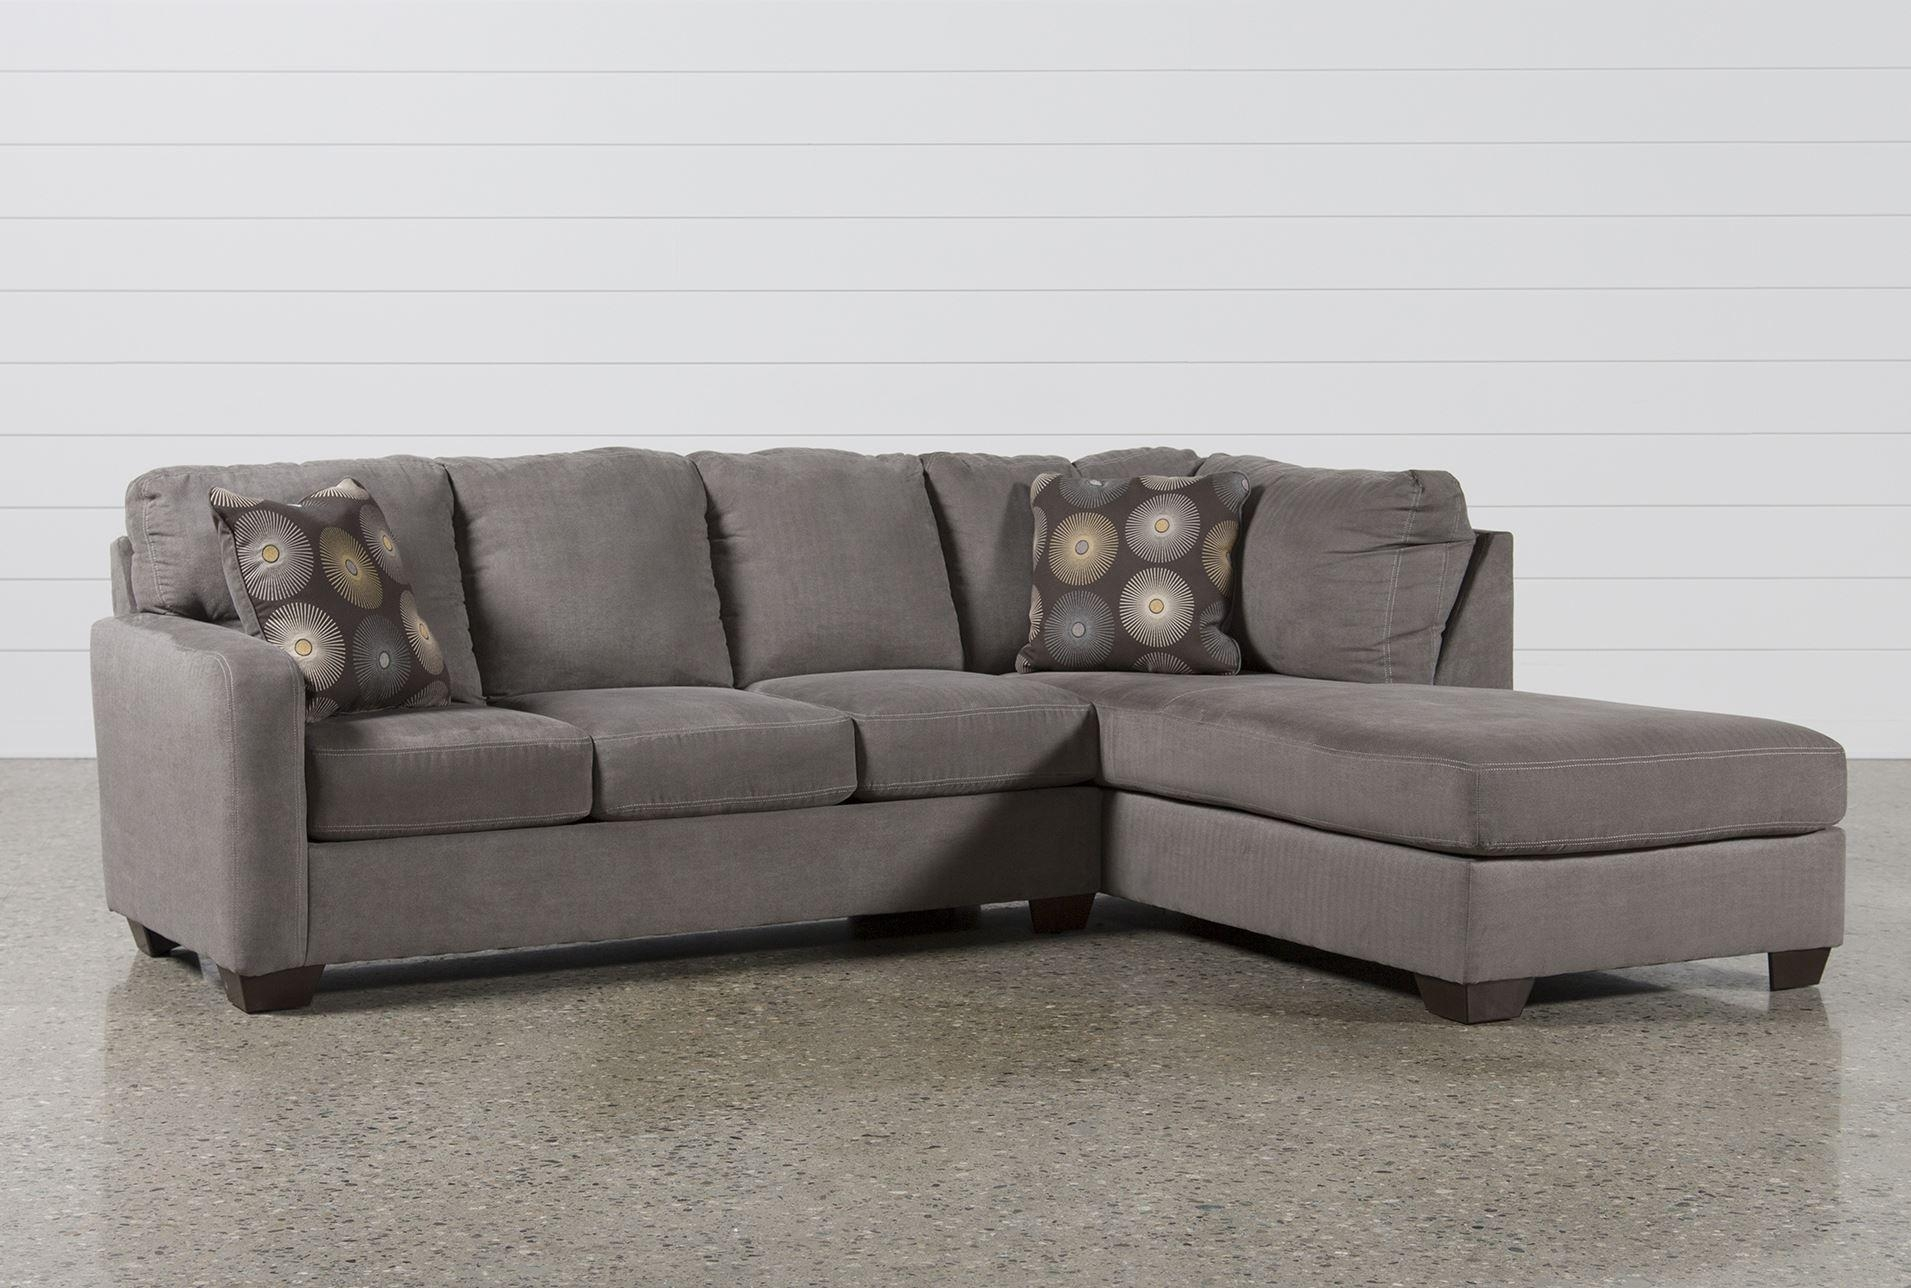 Long Sectional Sofa Toronto | Tehranmix Decoration In Long Sectional Sofa With Chaise (View 6 of 20)